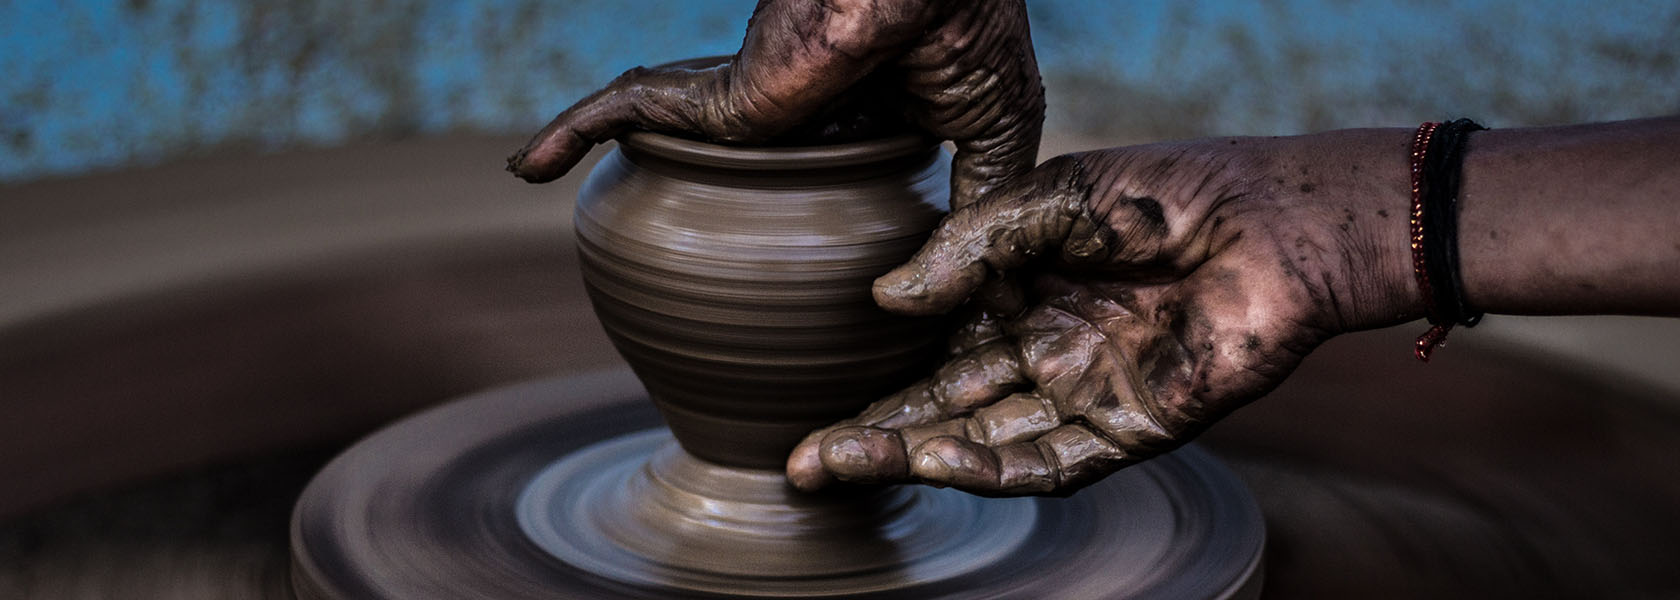 intro to potters wheel 2 day series_hero.jpg